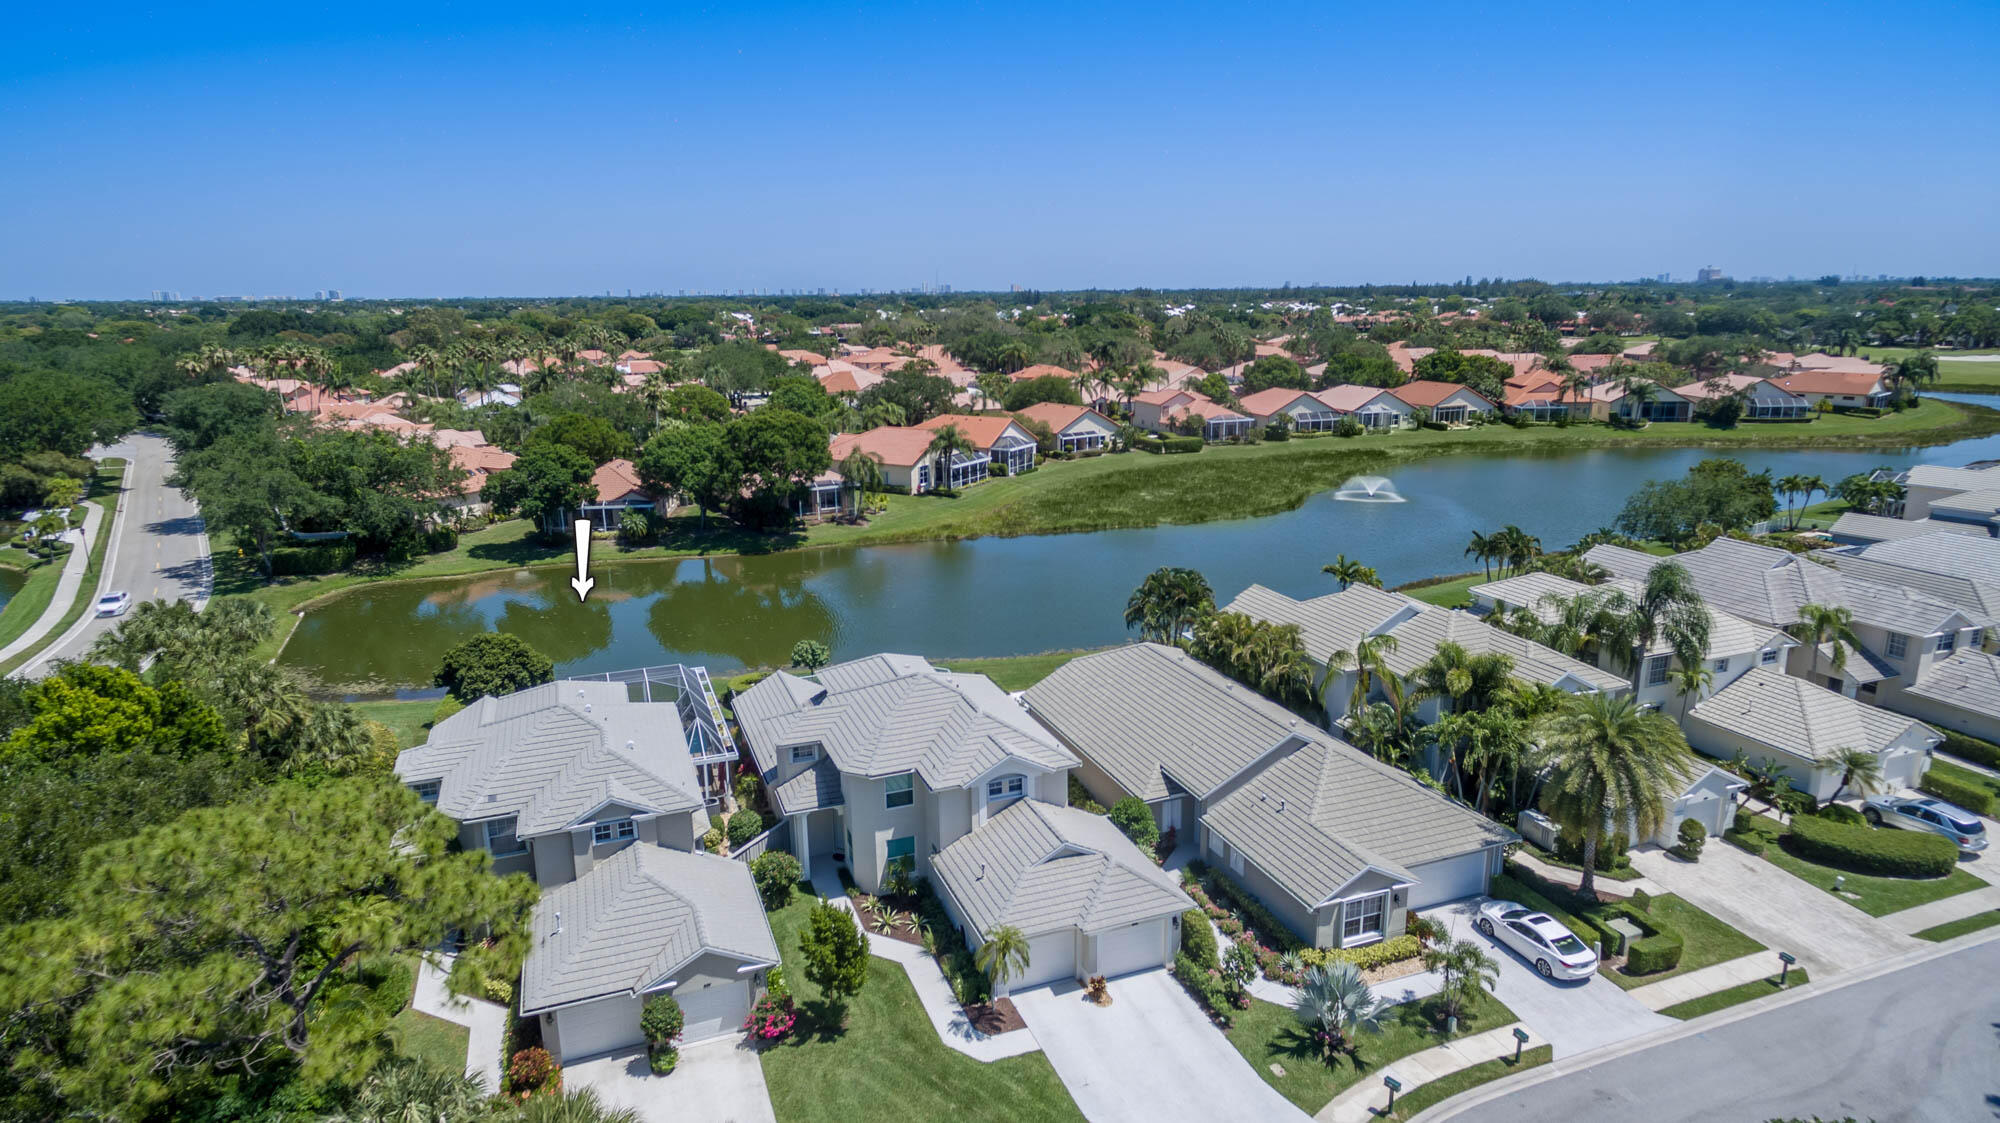 Fully furnished, turnkey, salt water pool home, behind the 24hr guard gated Eagleton community within PGA National. The Master bedroom with king bed is located on the first floor, overlooking the heated salt water pool. No membership.